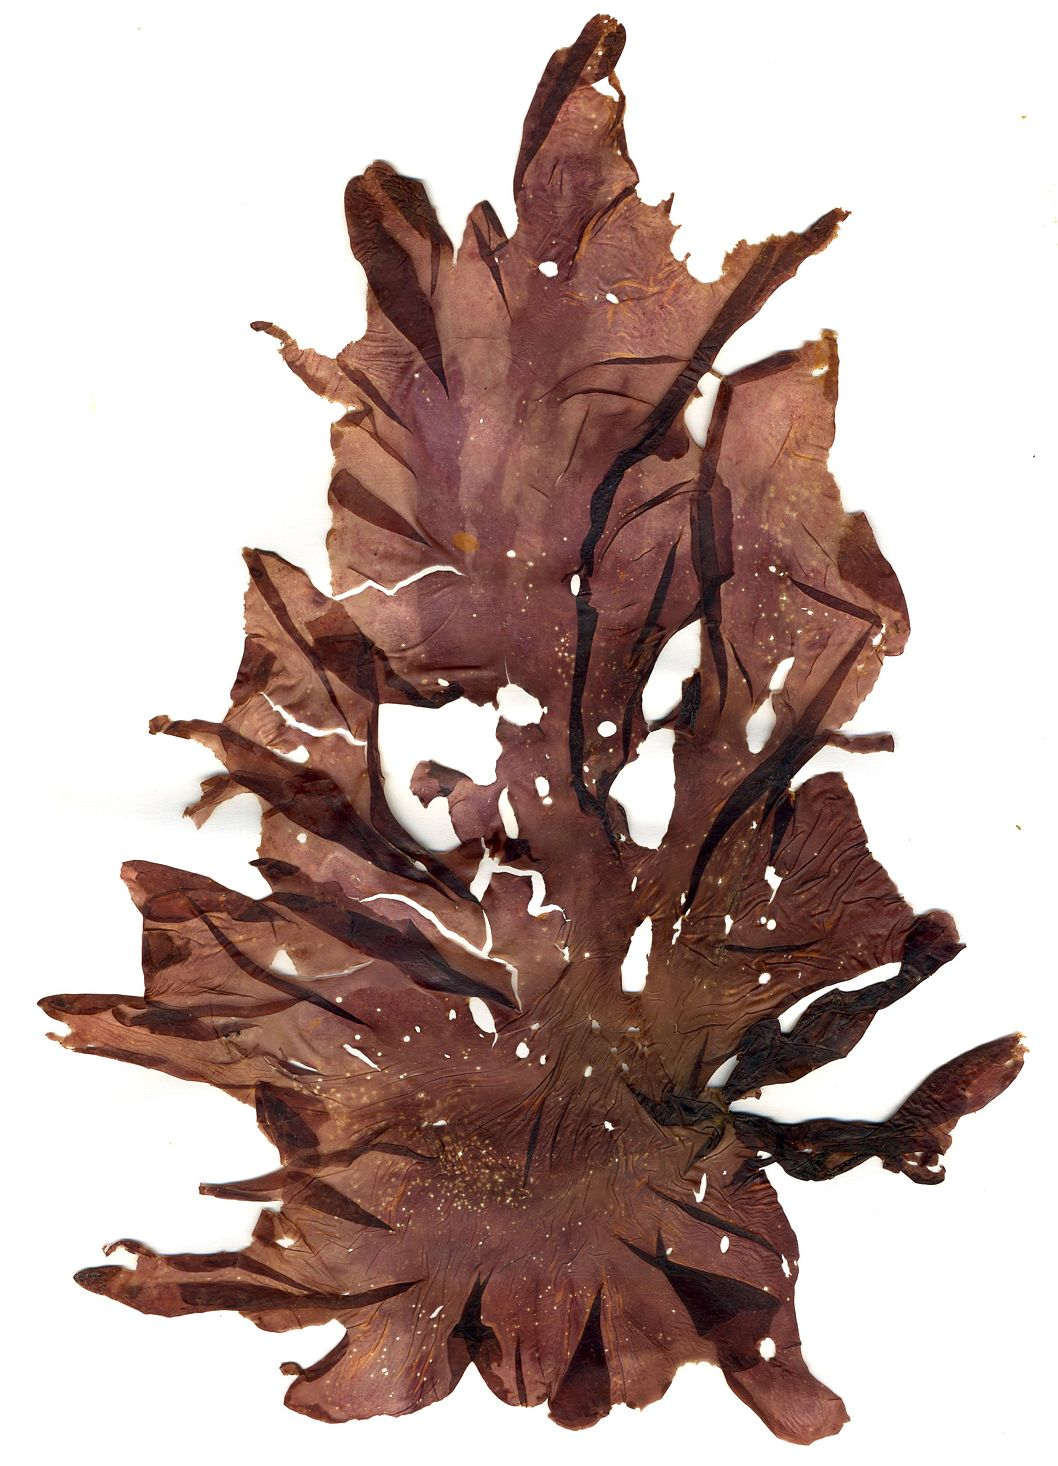 Porphyra umbilicalis   - One of the many species of red algae frequently referred to as nori.